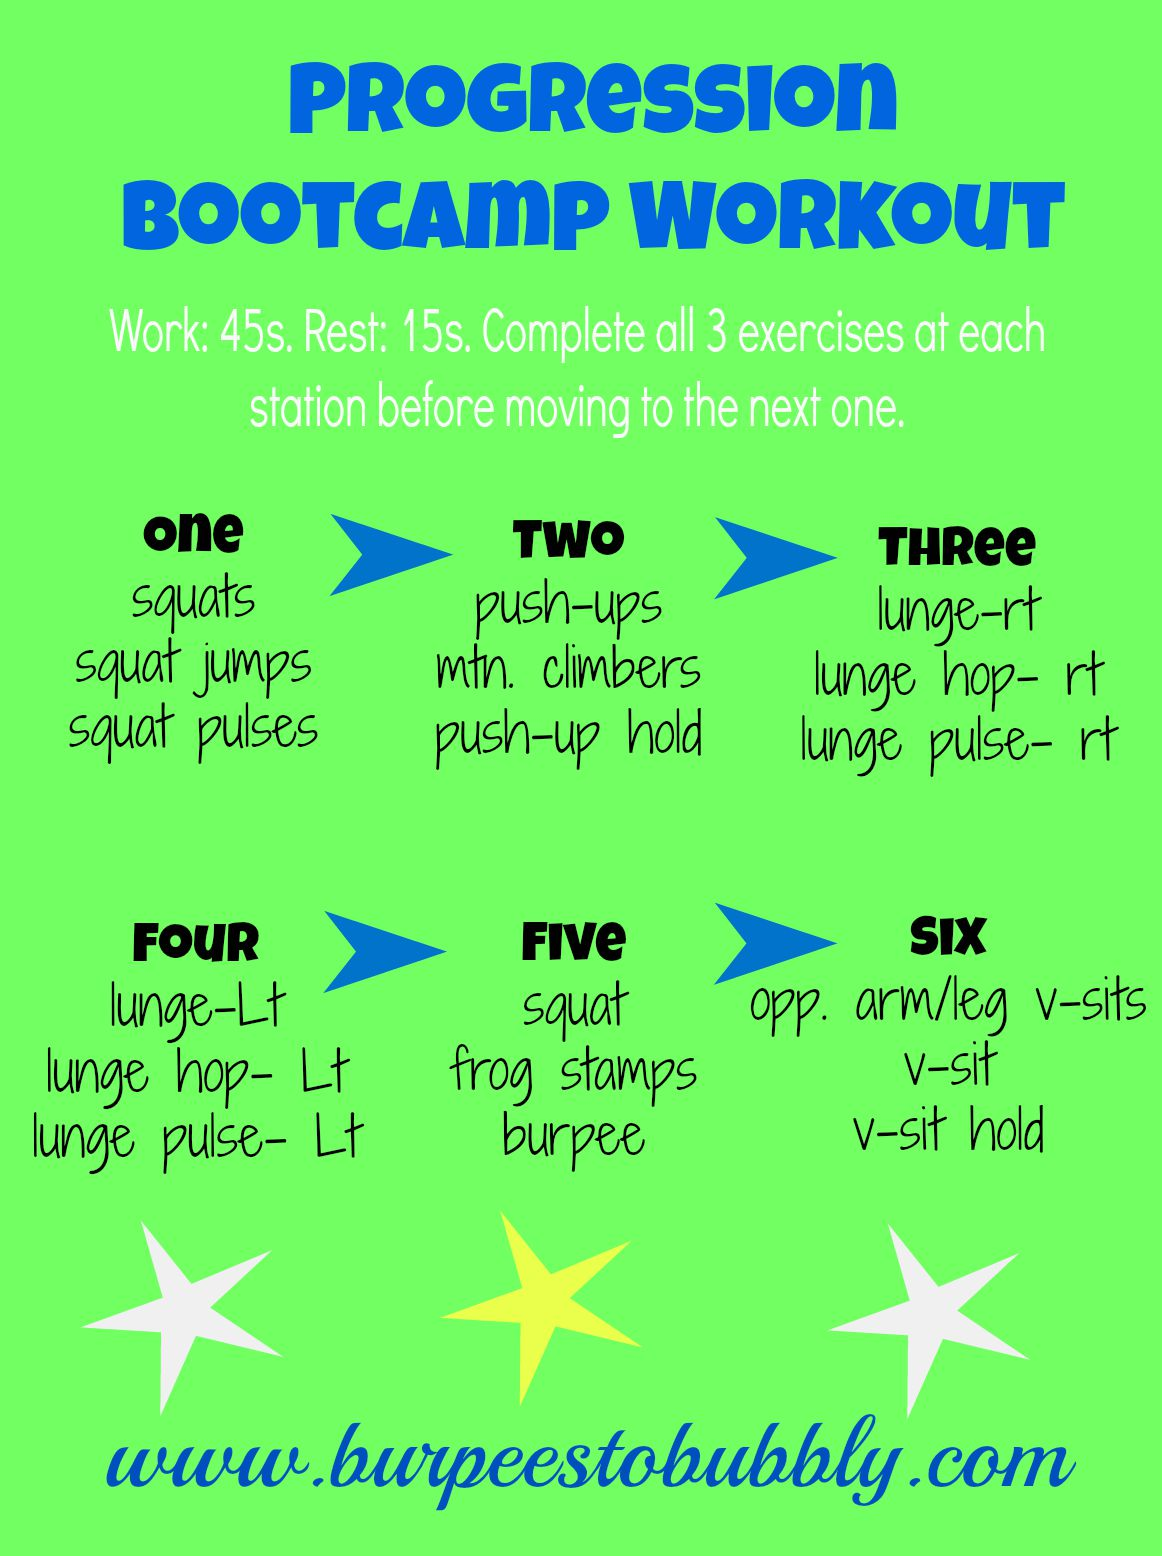 Wednesday Workout  Progression Bootcamp Stations  U2013 Burpees